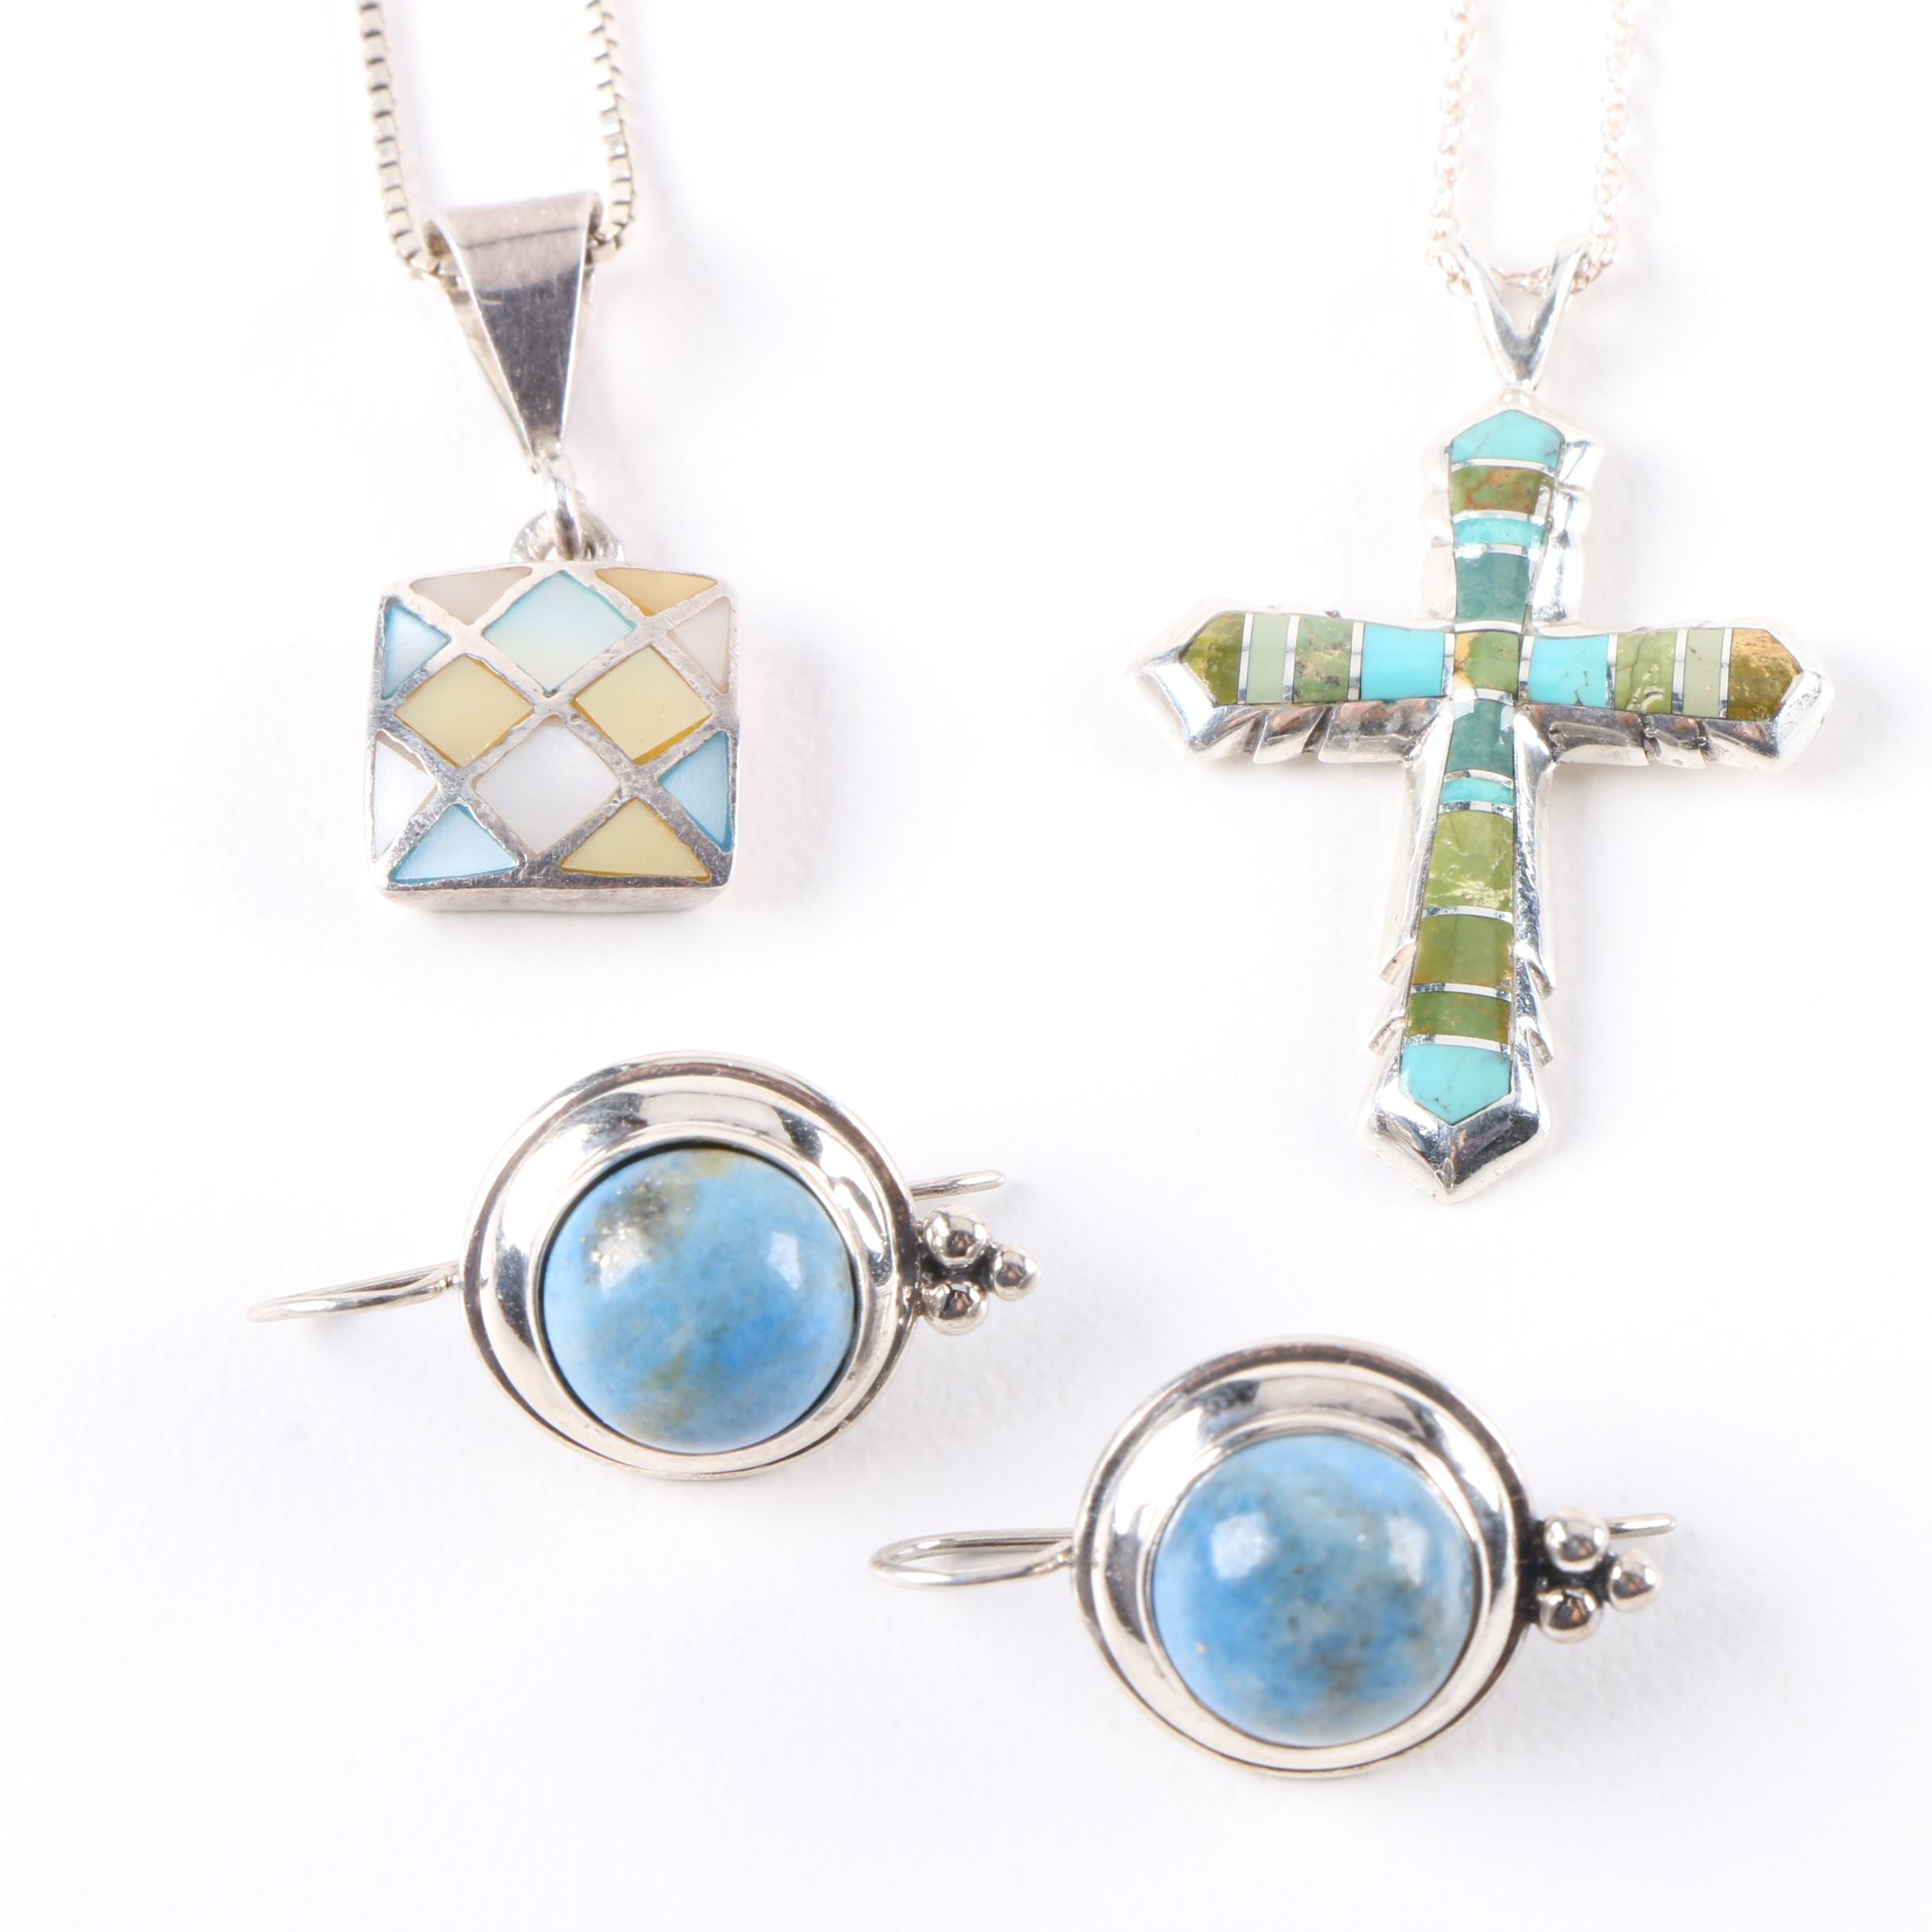 Sterling Silver Pendant Necklaces and Earrings Including Turquoise